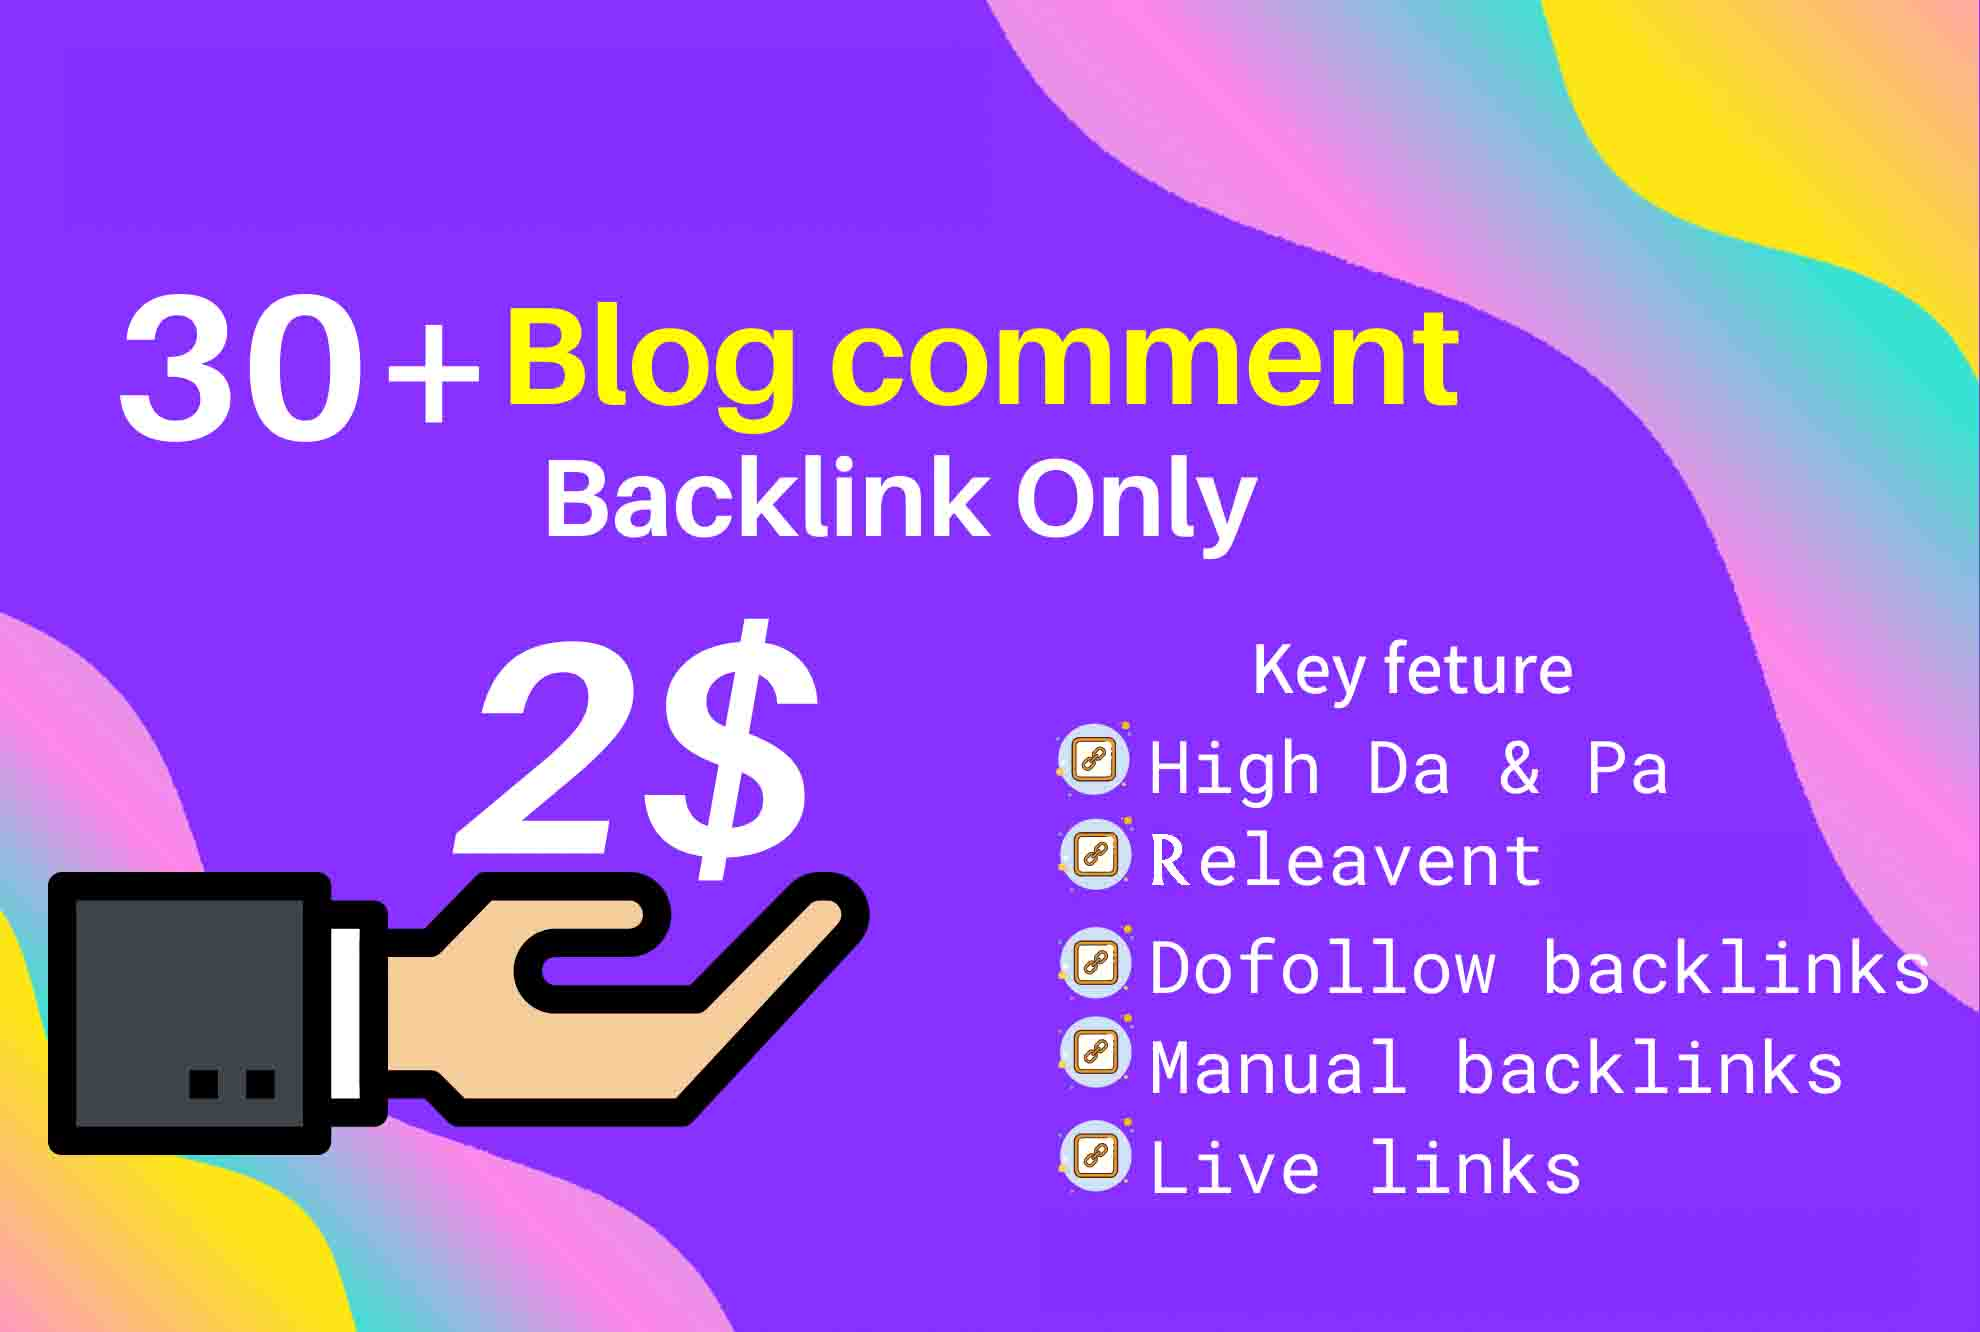 I will create blog comment do-follow backlink